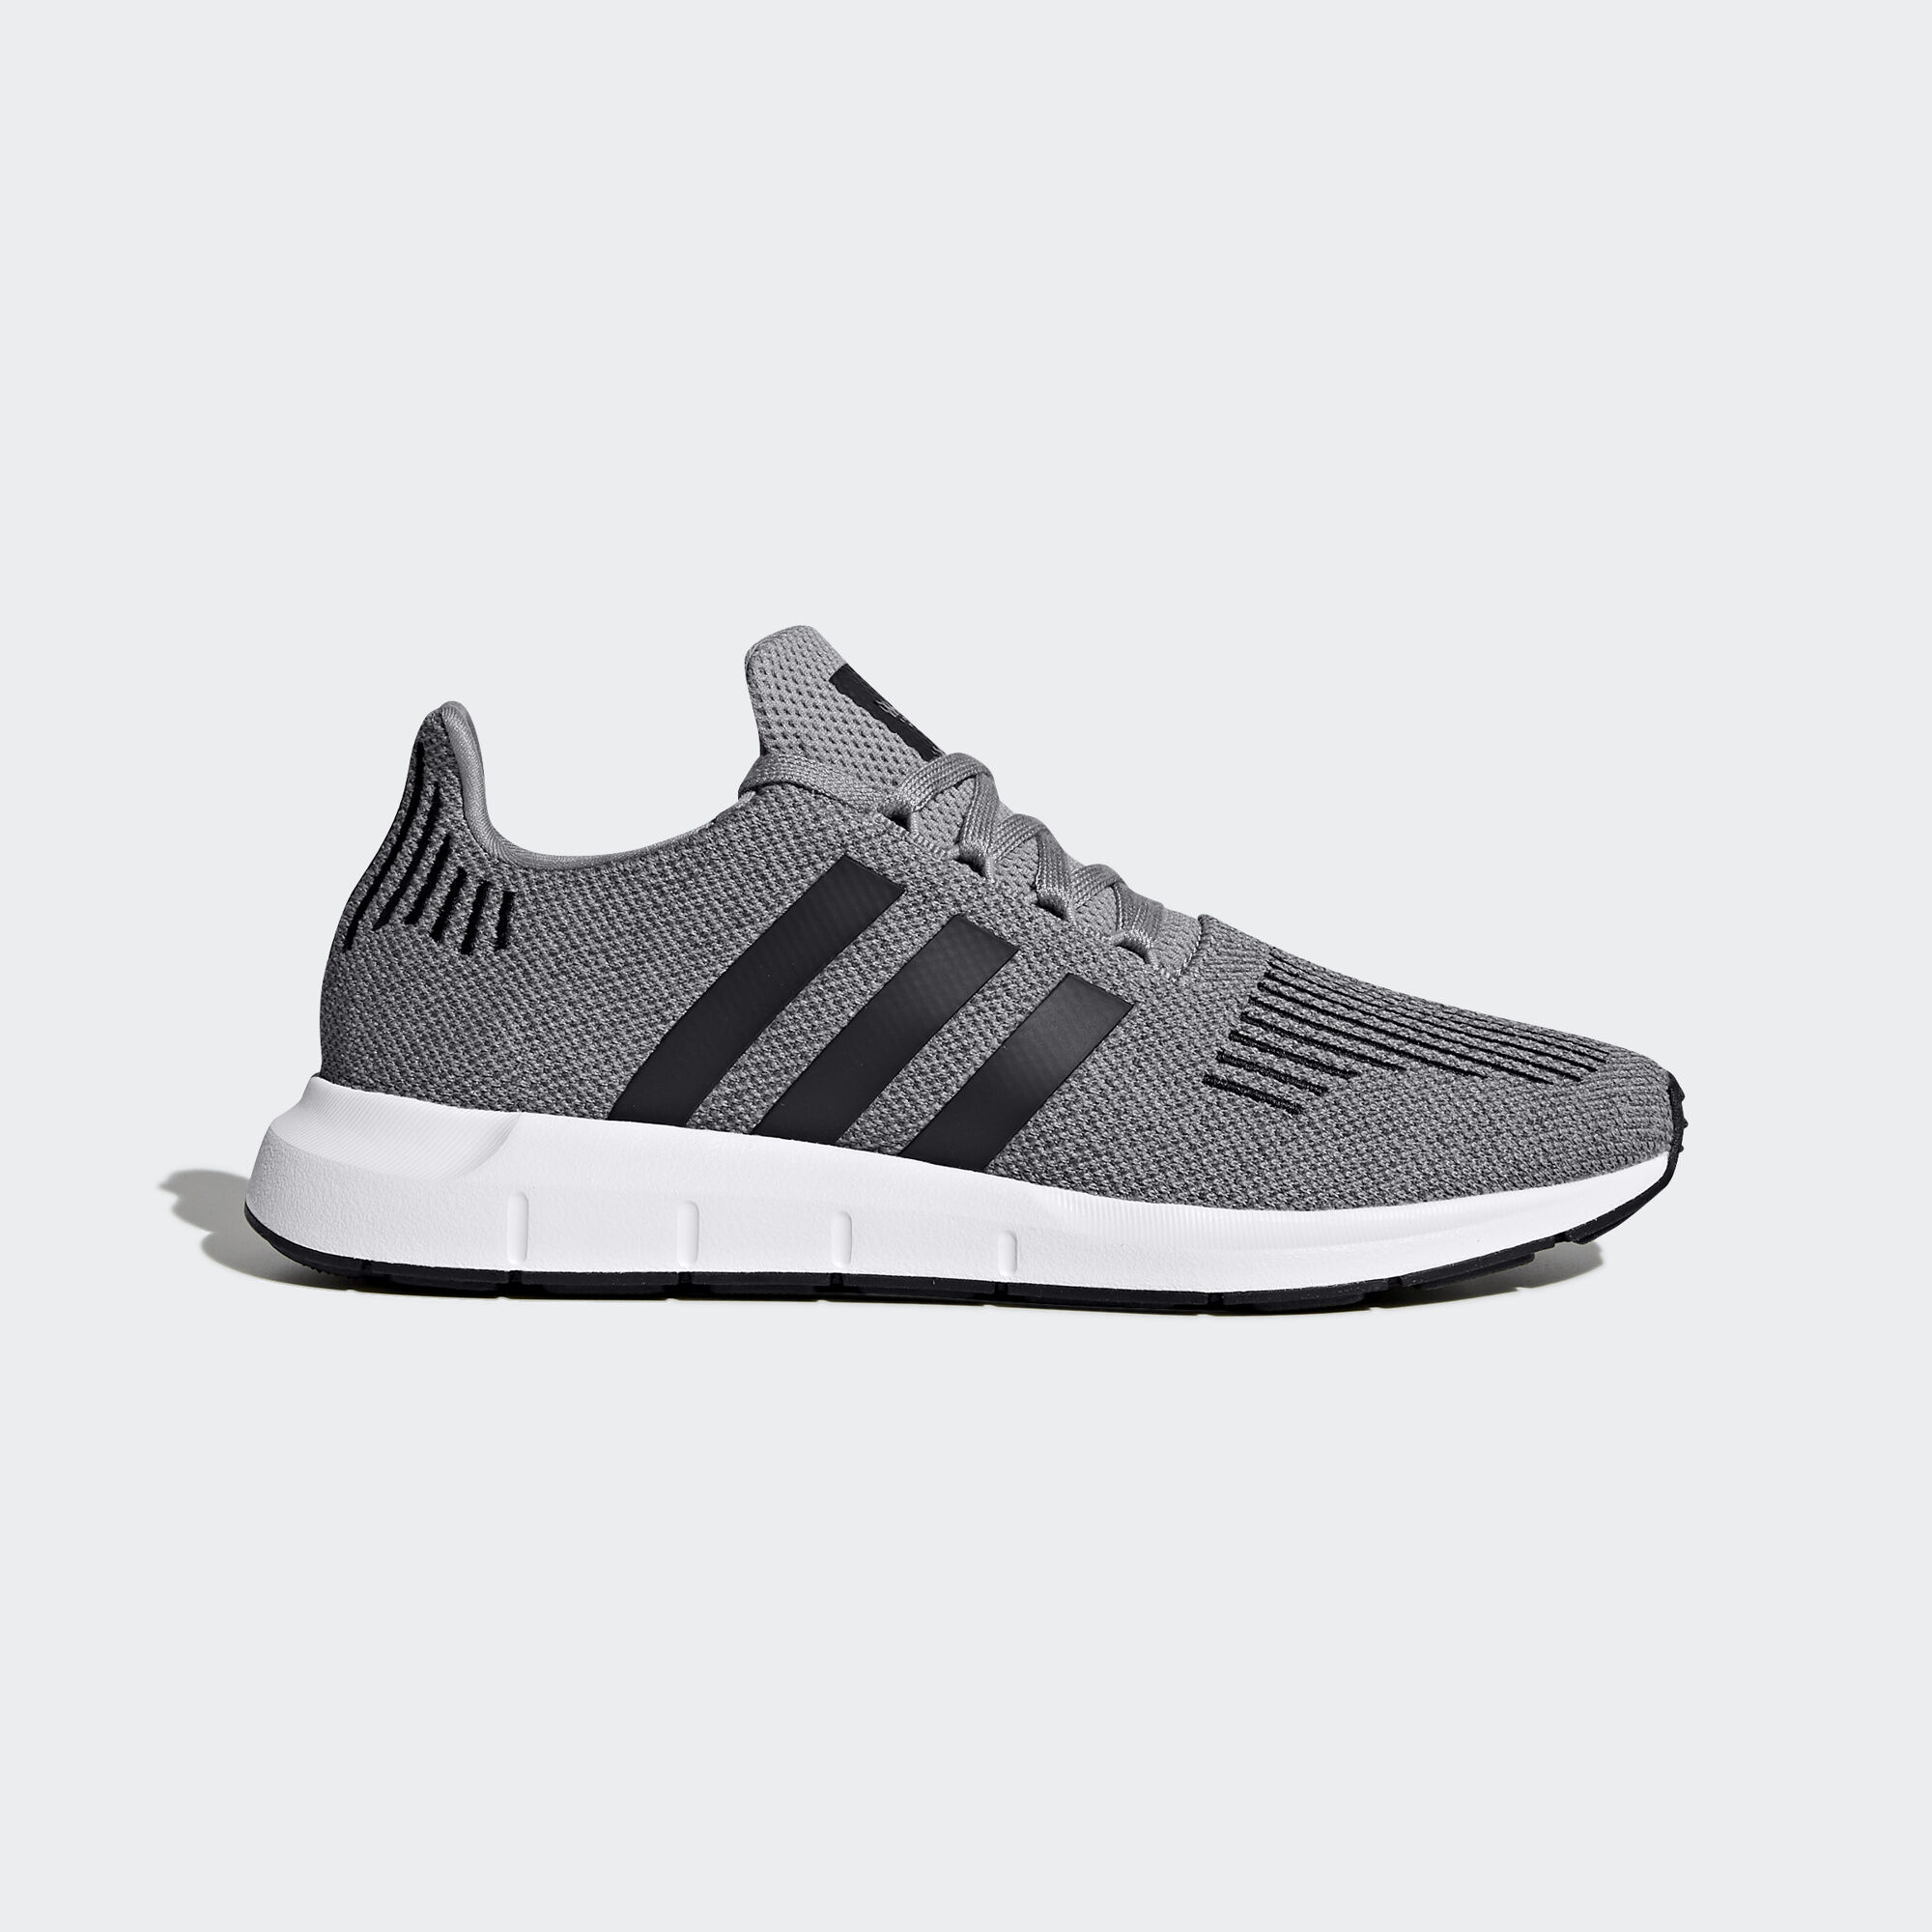 Adidas Swift Run Shoes Grey Adidas Asia Middle East